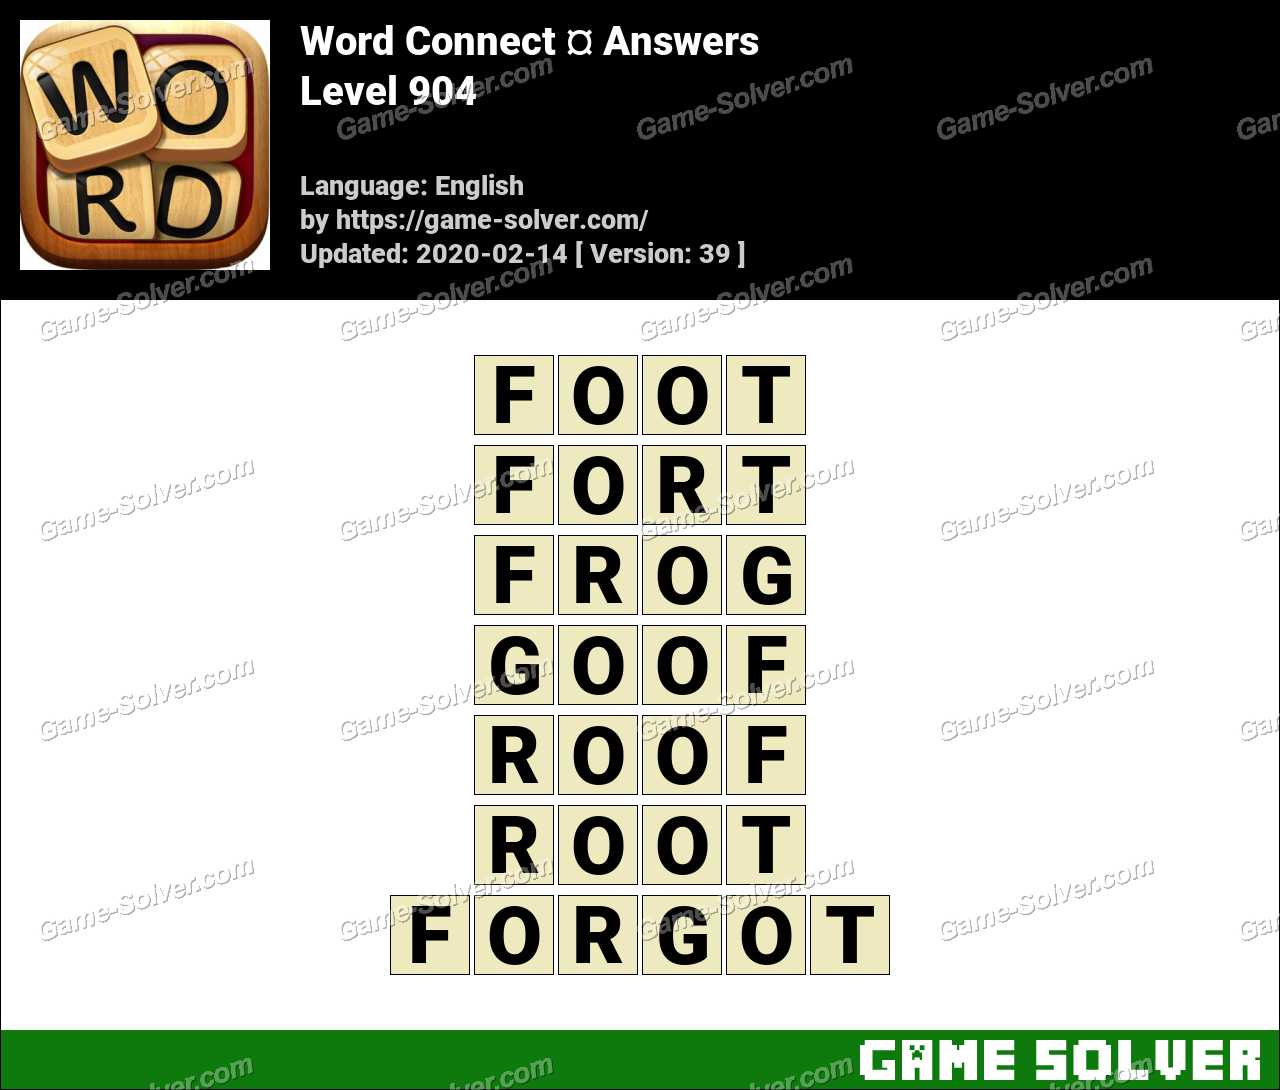 Word Connect Level 904 Answers